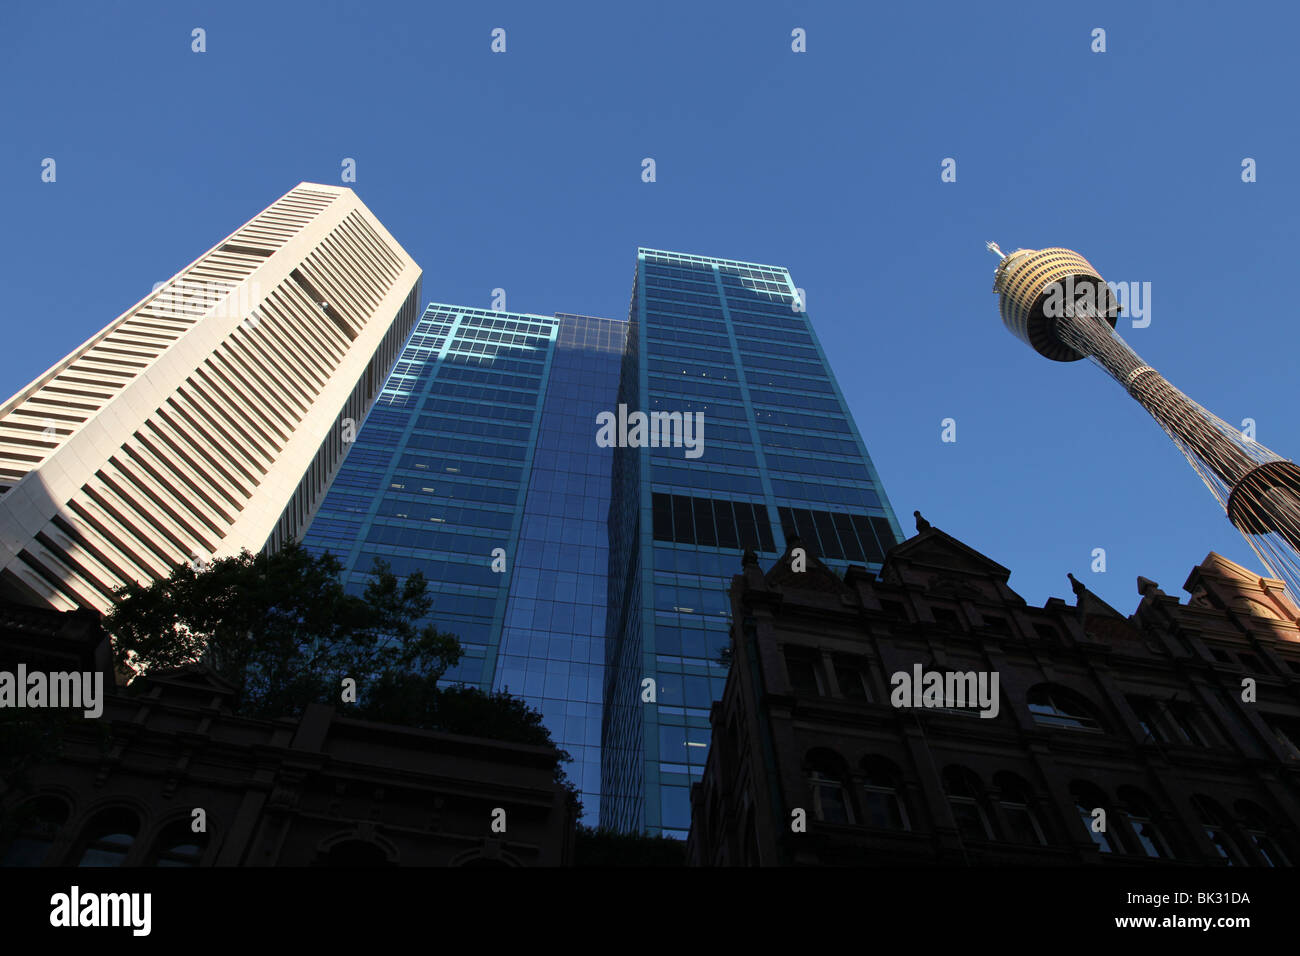 Sydney Tower, MLC Centre and other CBD buildings in the late afternoon sunshine. - Stock Image